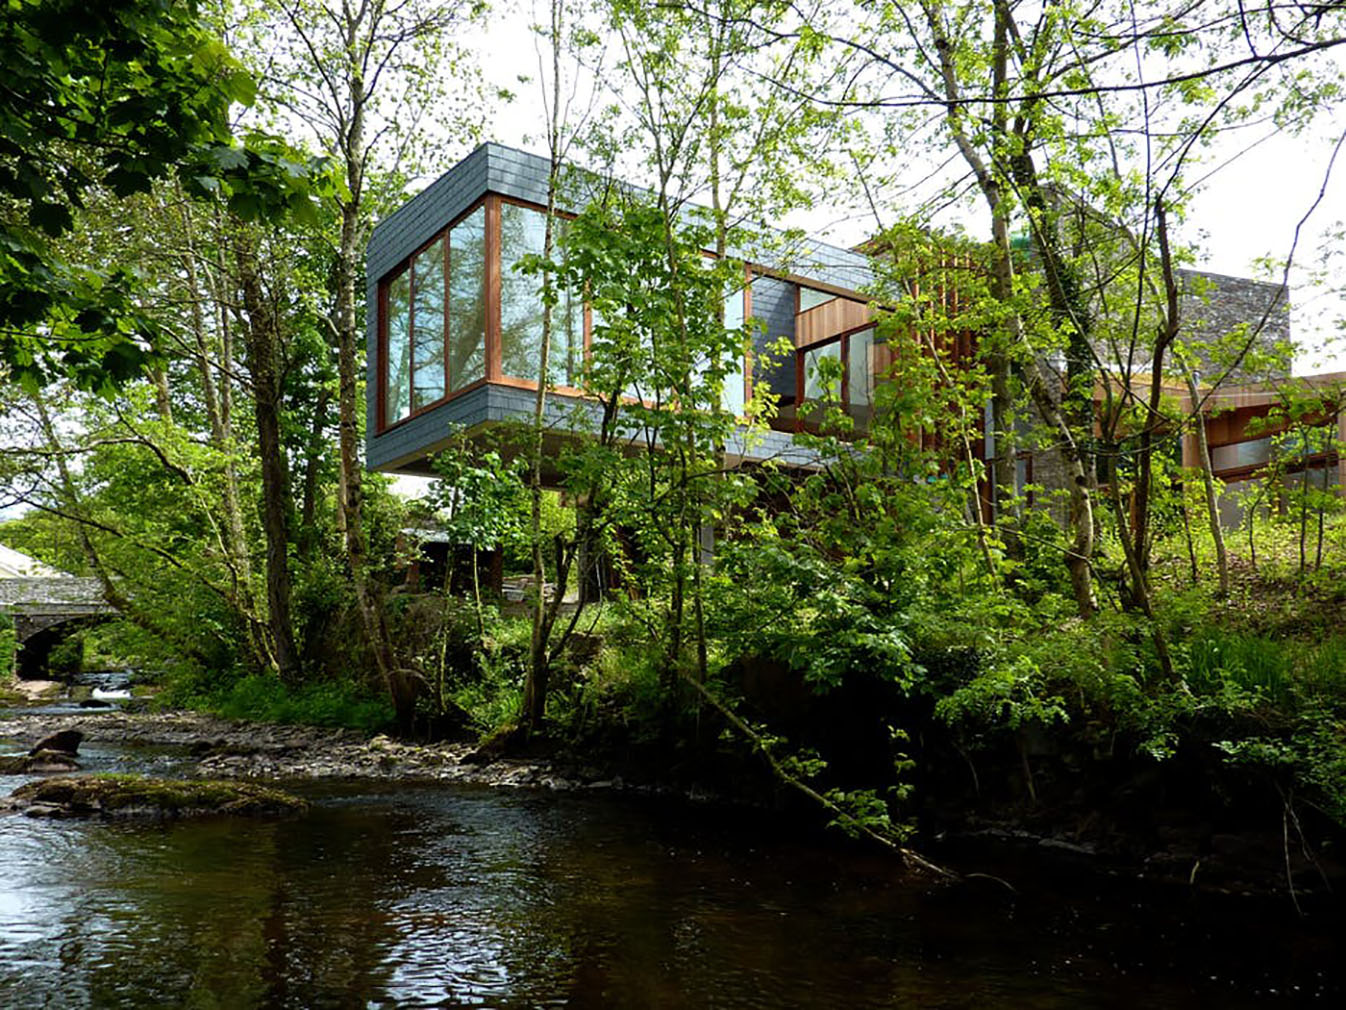 Ty Hedfan cantilever house in Powys, Wales